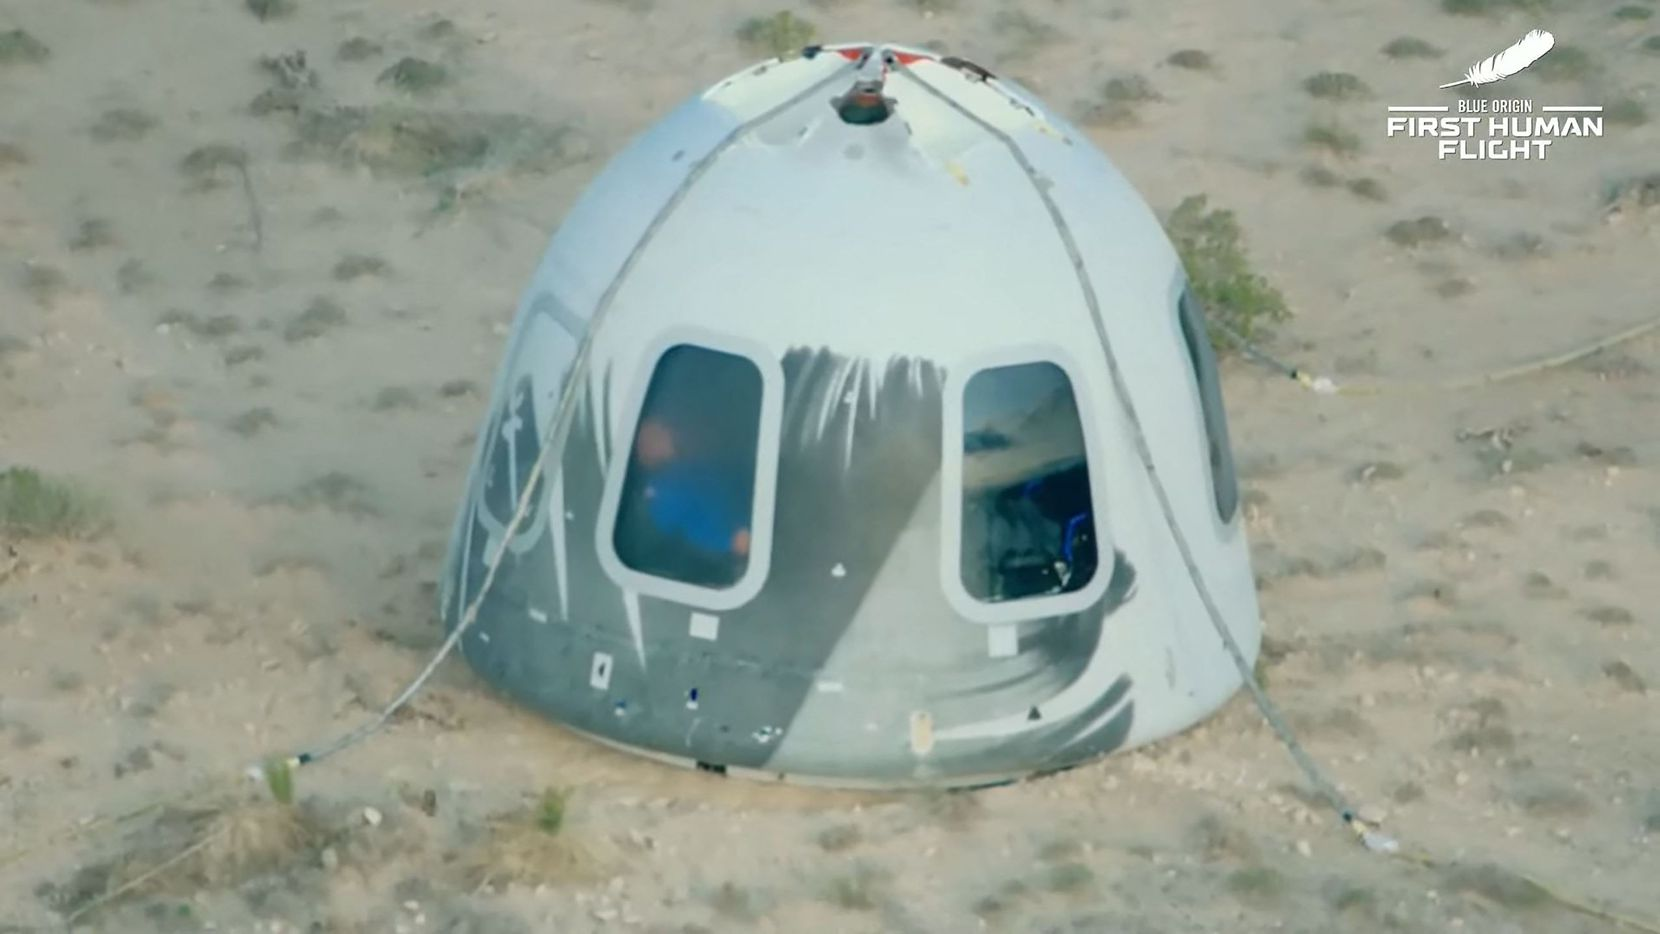 Blue Origin's craft capsule lands back in Van Horn after an 11-minute flight to an altitude of 65 miles.